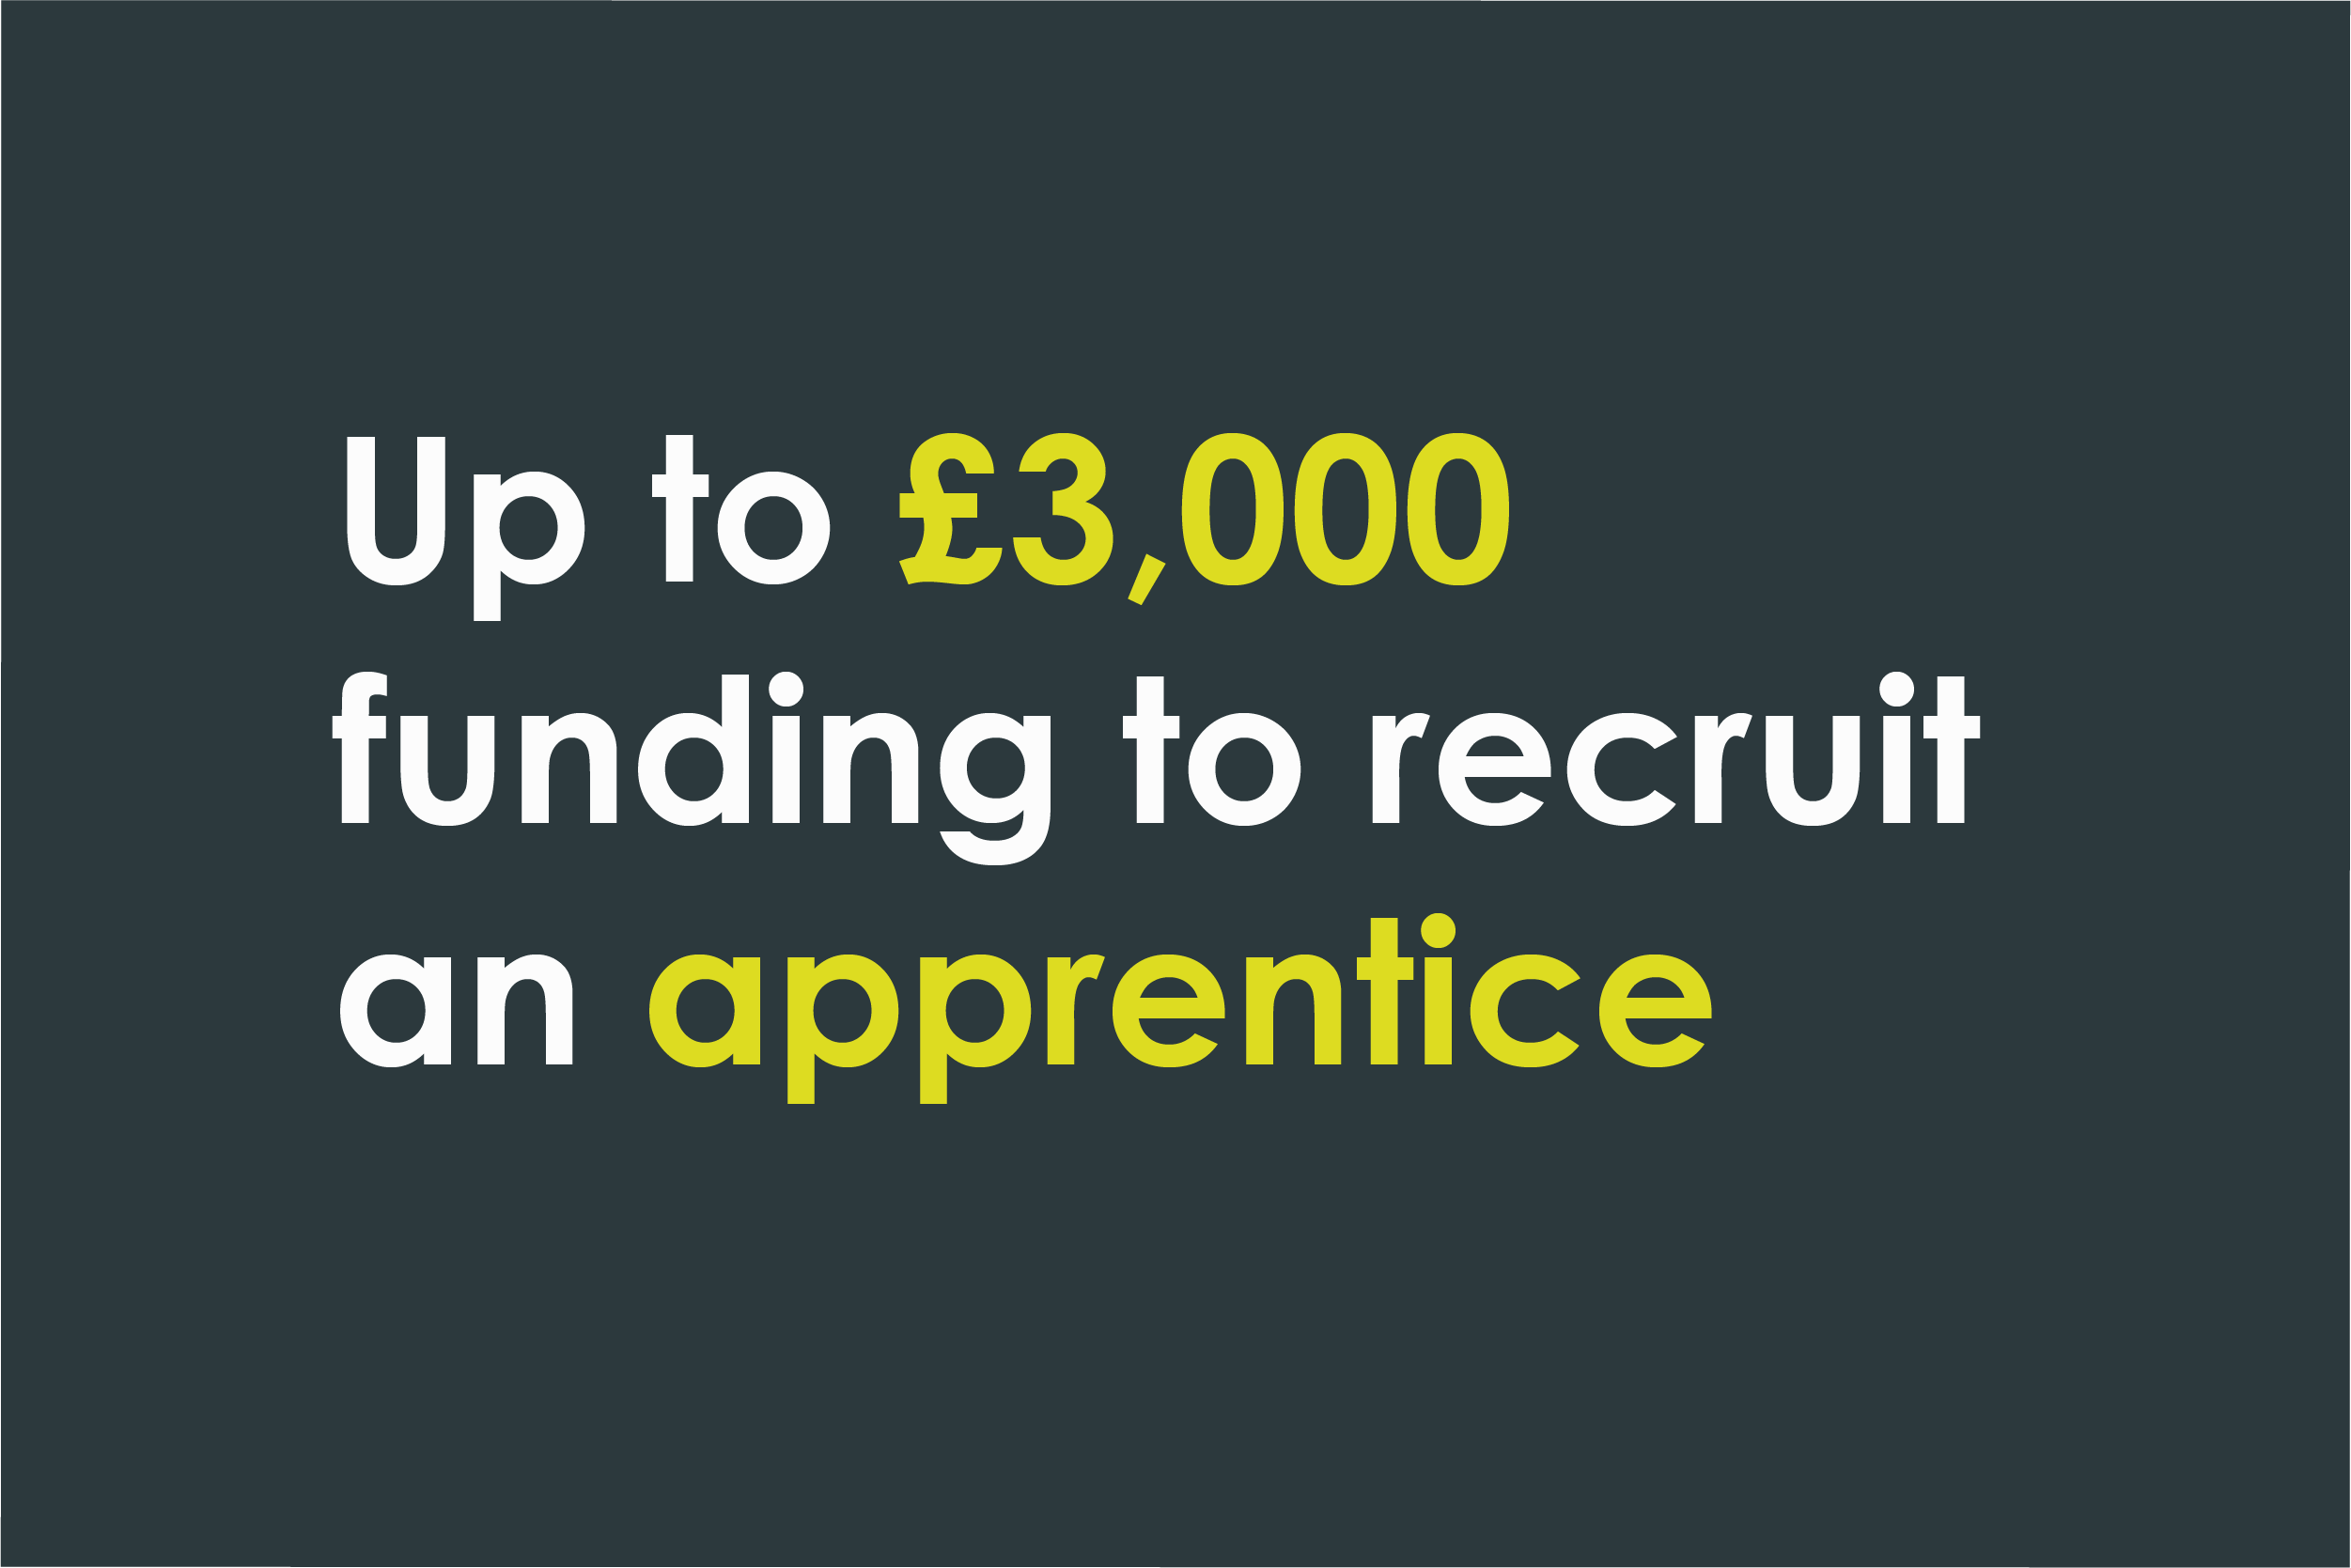 Image showing £3,000 funding available to help recruit an apprentice